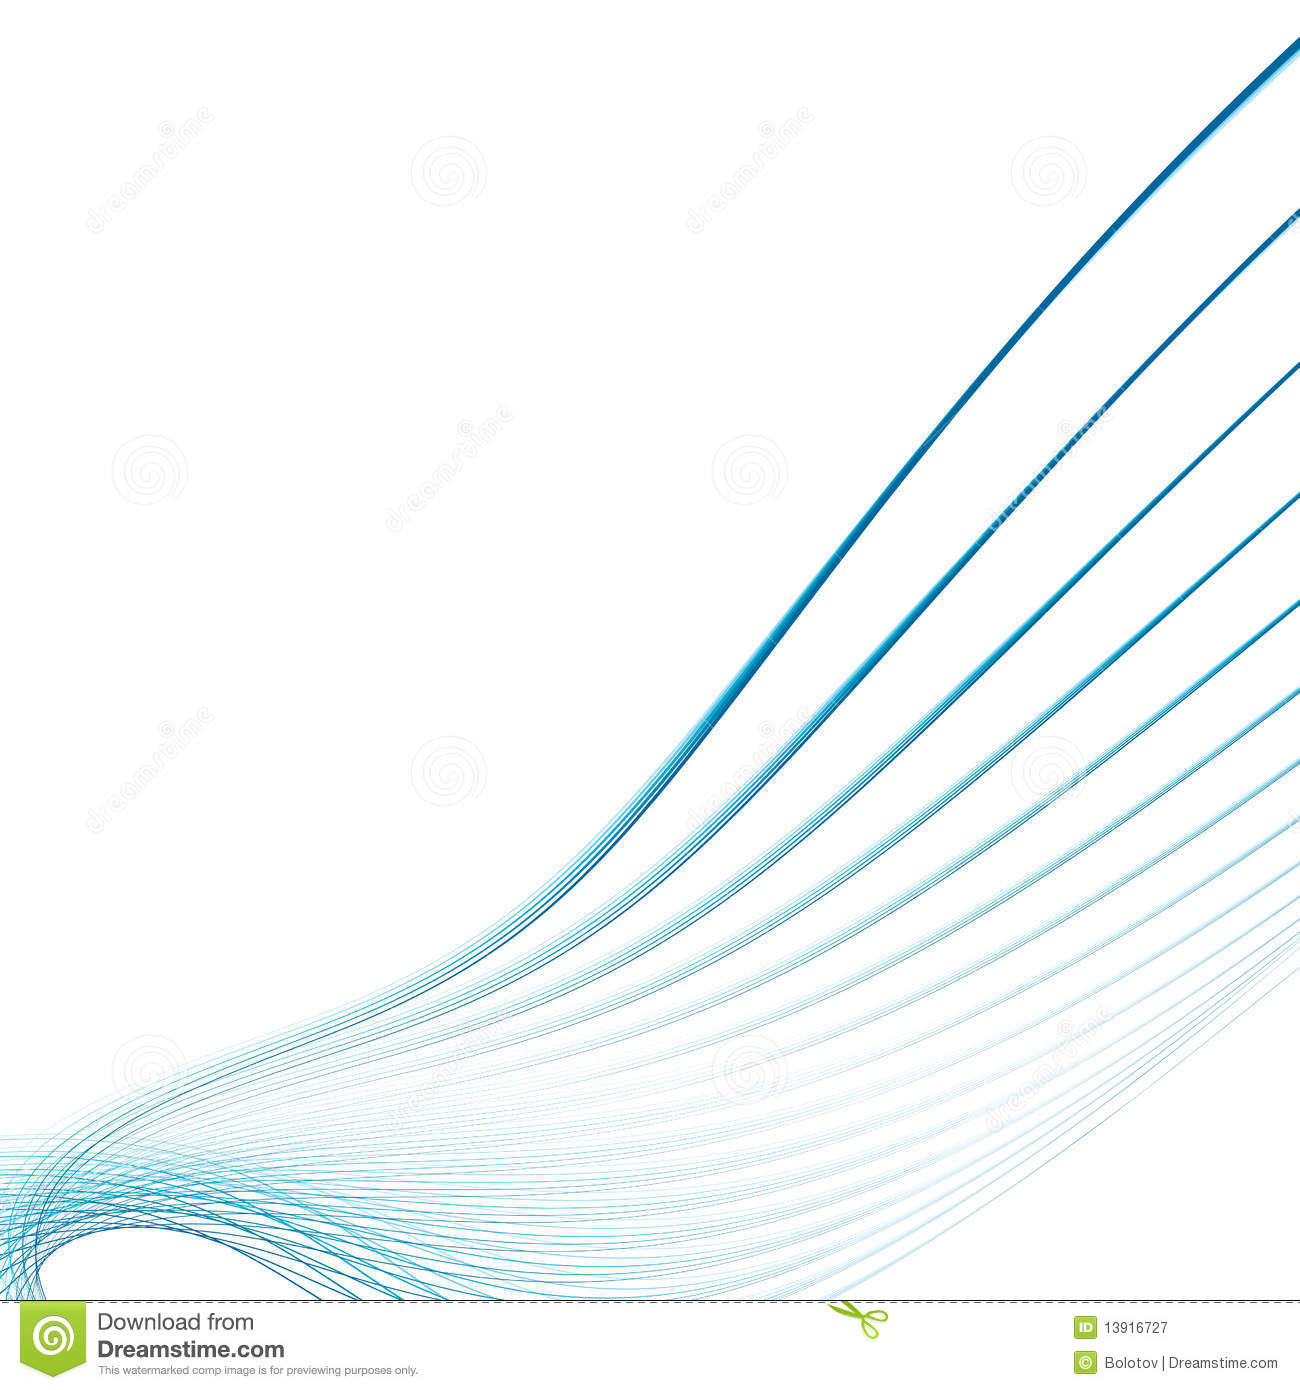 Line Design Art Psd : Abstract line background stock illustration